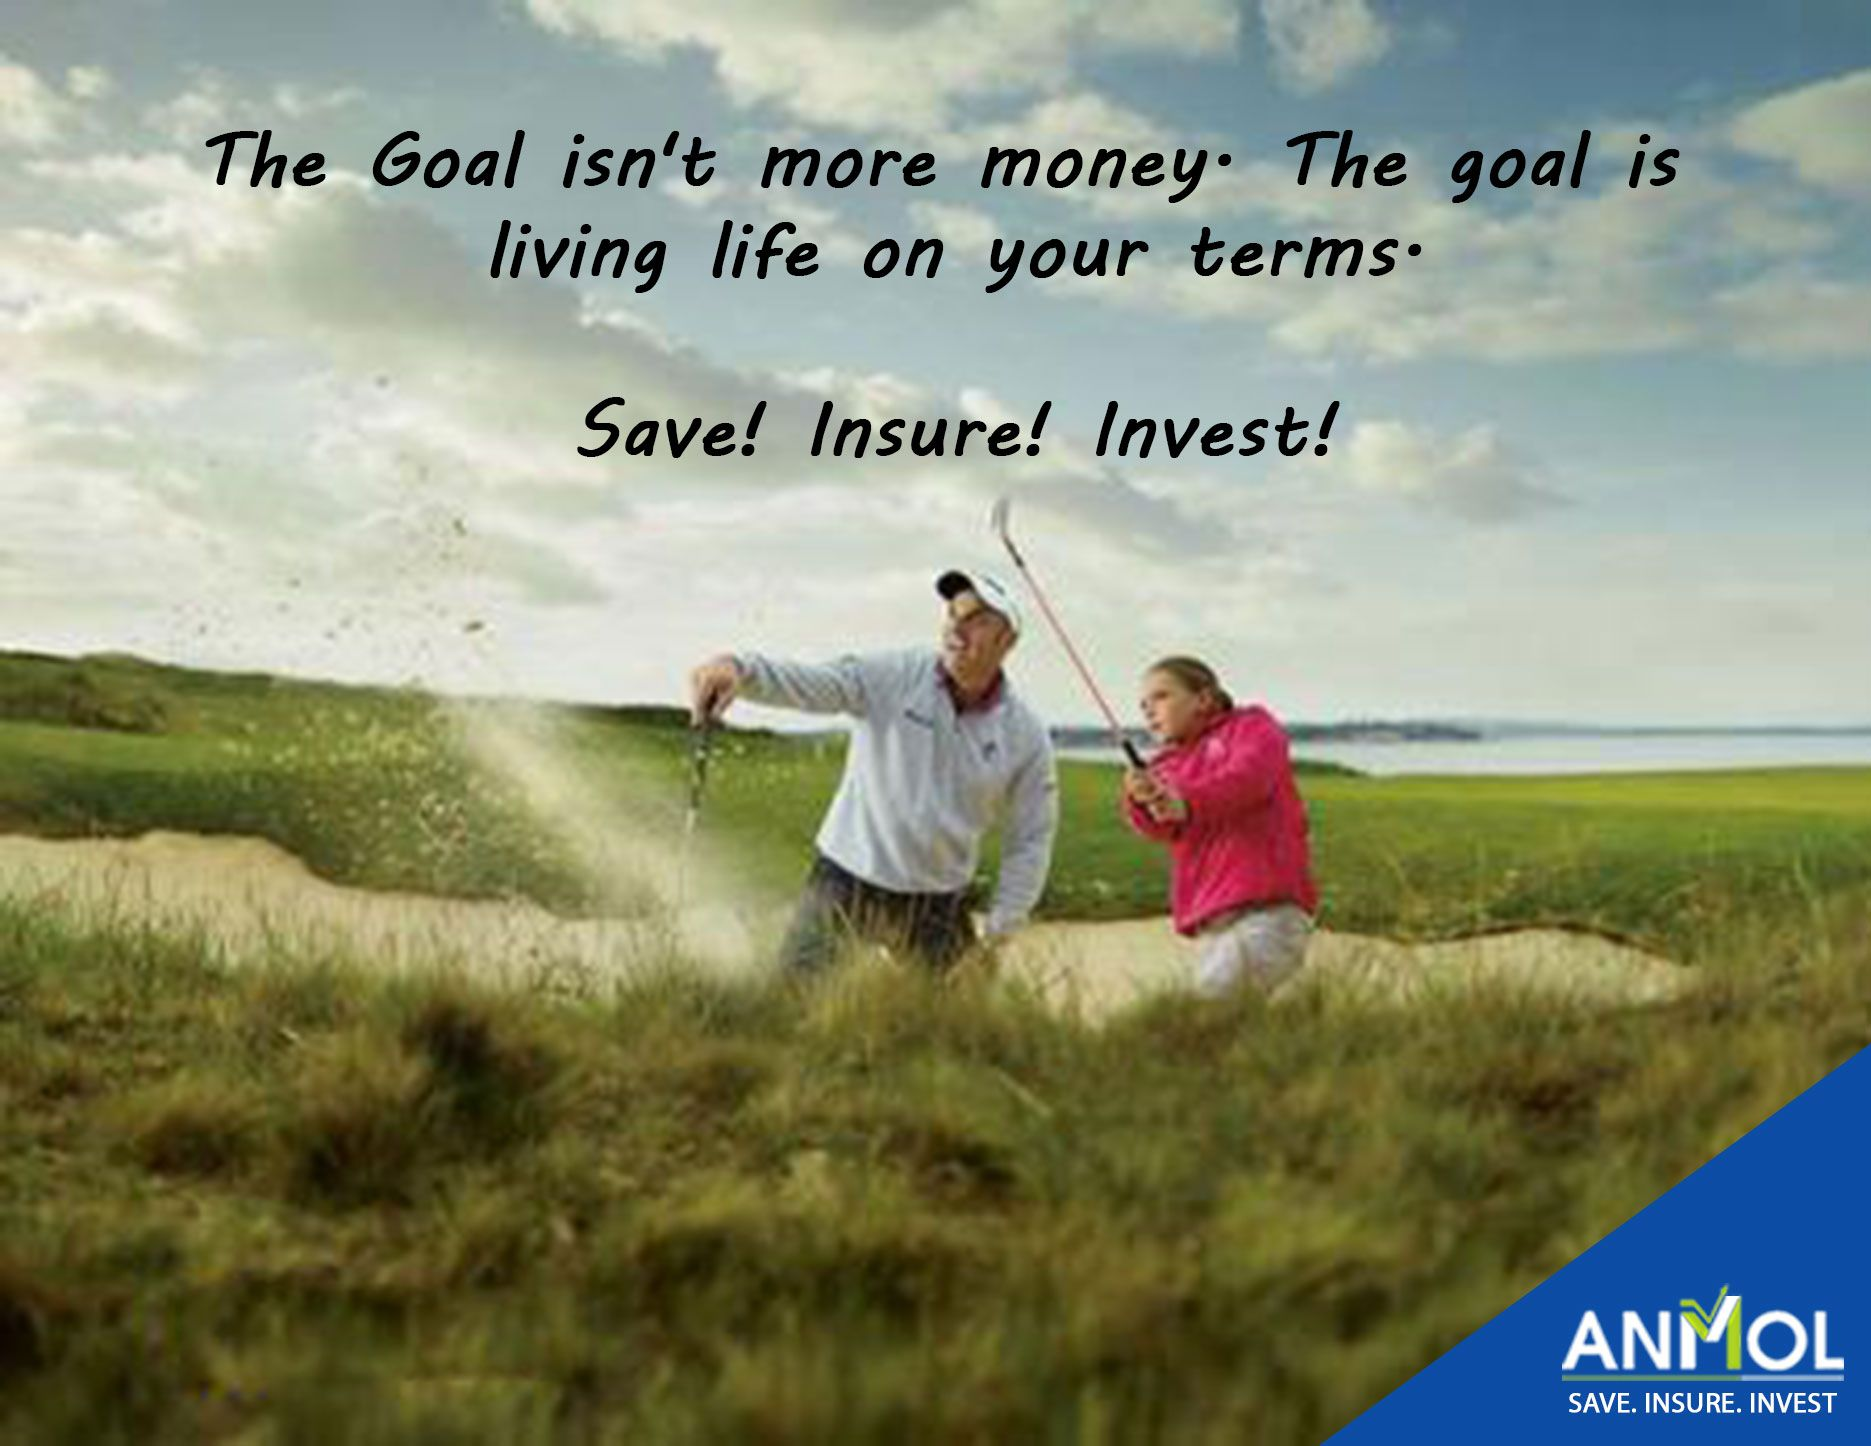 The goal isn't more money. The goal is living life on your terms.  Save! Insure! Invest!  #Happy #Saving #Happy #Investing   #Save #Insure #Invest #Future #Savings #Money #AnmolShare #Planning #Management #Life #Chance #ShareMarket #RelianceMutualFund #MutualFunds #InvestmentBanking #NationalStockExchange